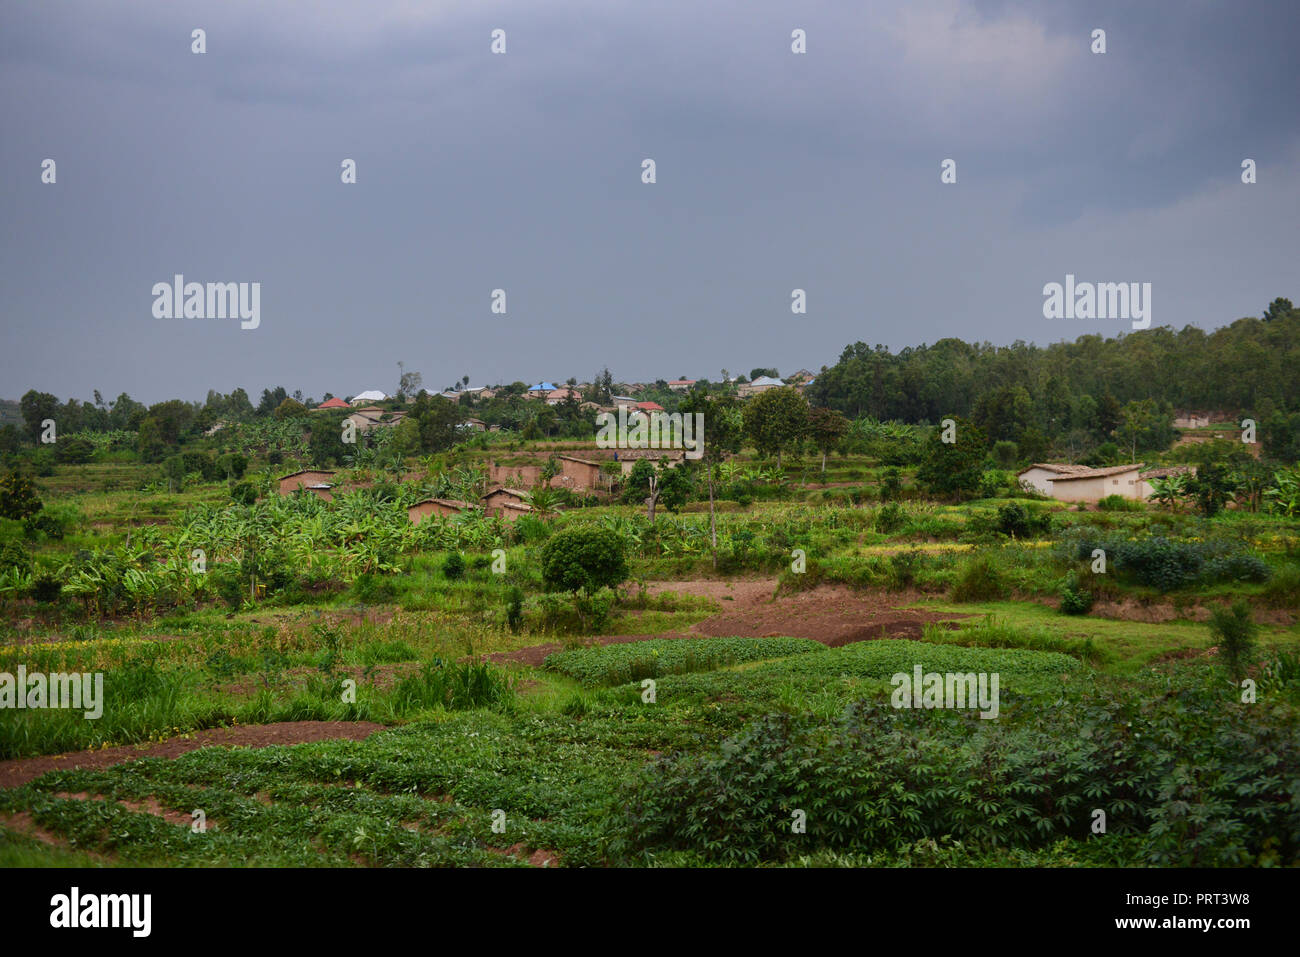 Vegetables cultivation in rural Rwanda. - Stock Image